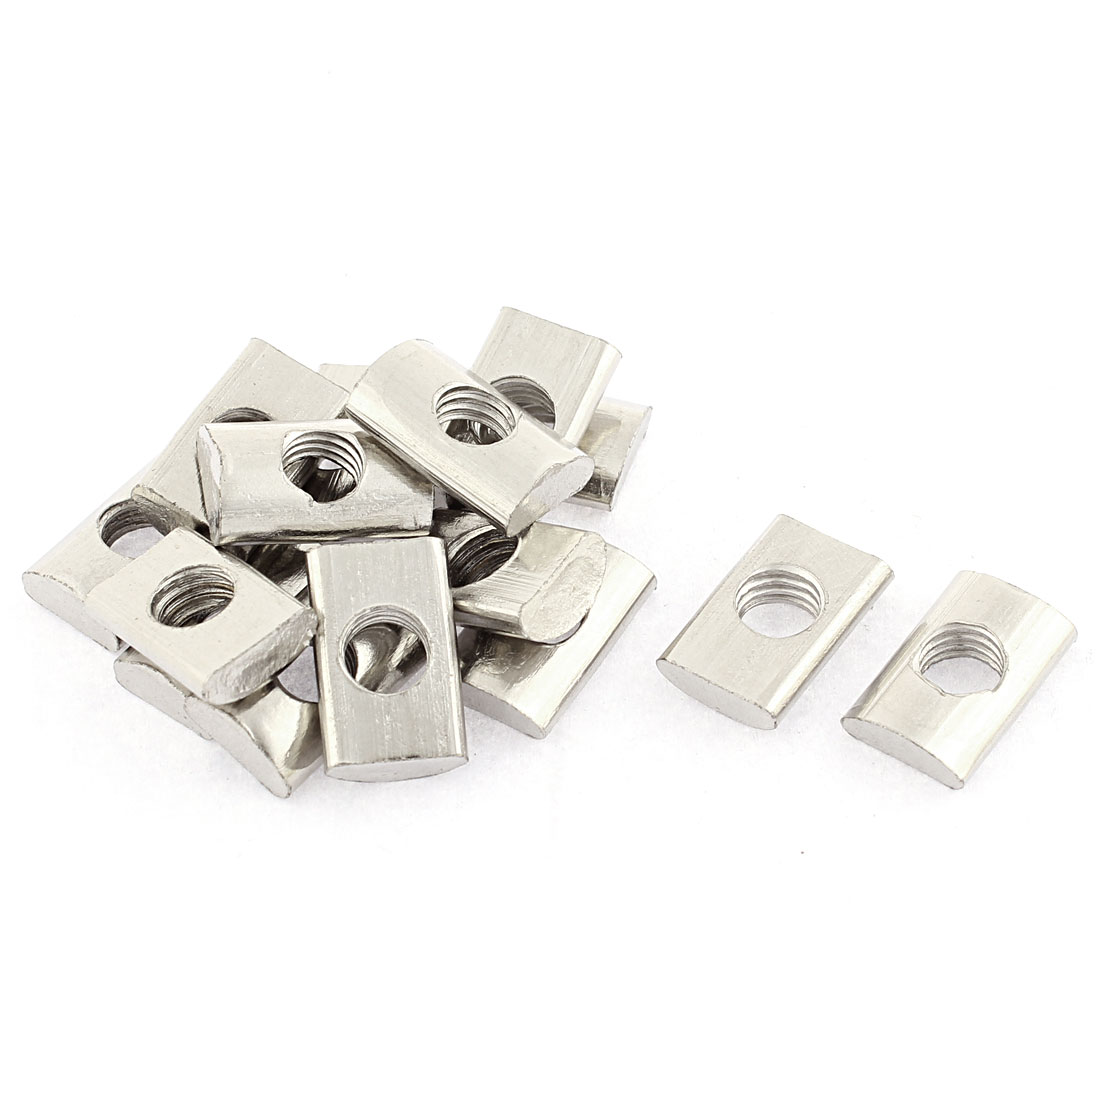 M8 Metal Half Round Roll in T-slot Nut Silver Tone 15pcs